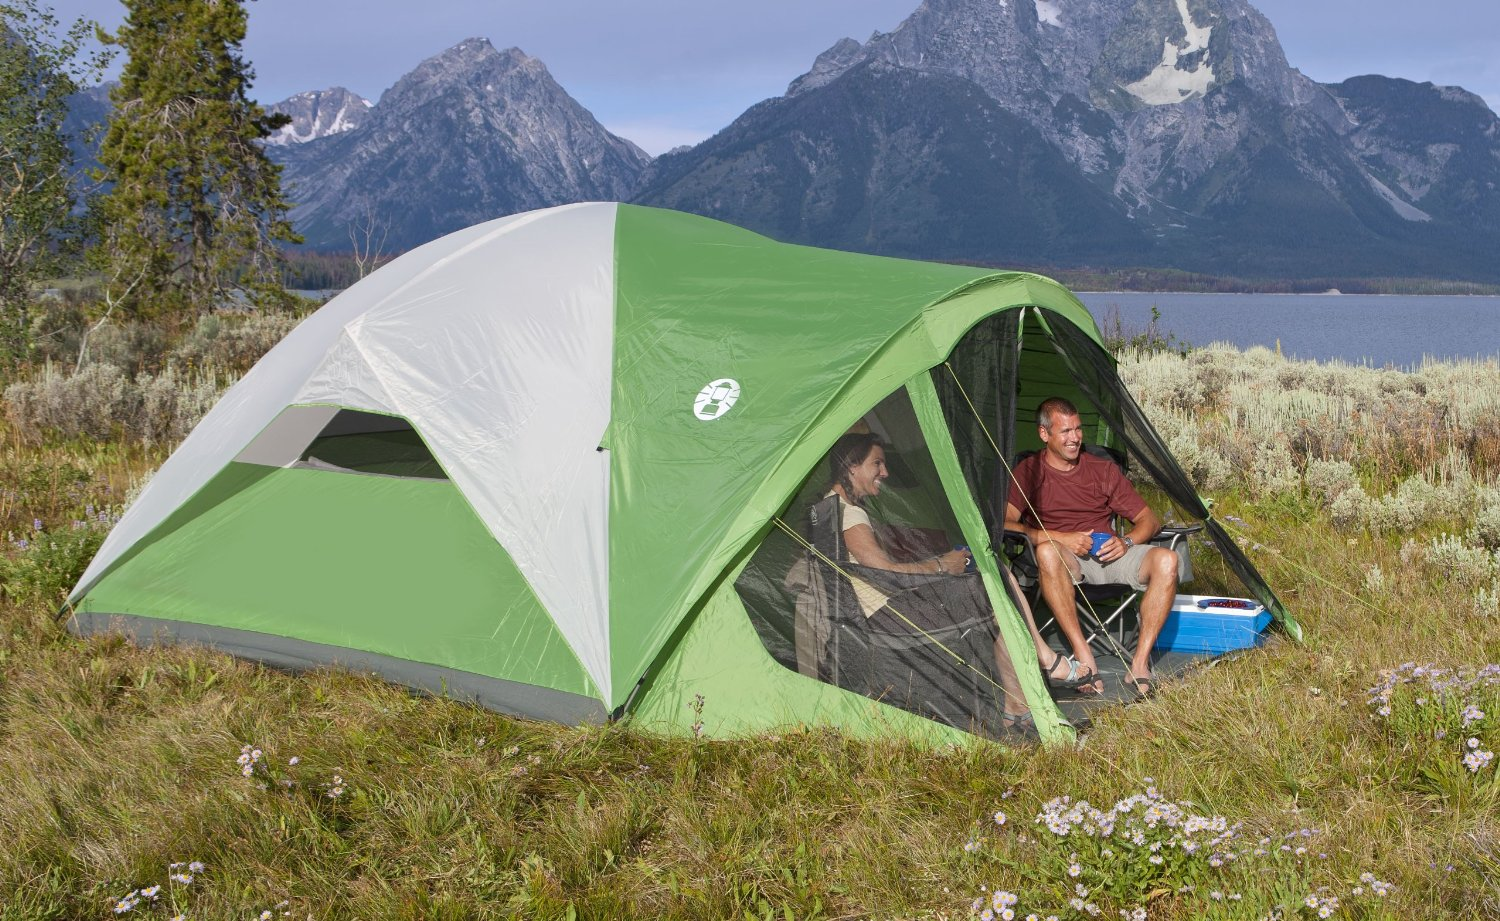 An in depth review of the best Coleman tents of 2018